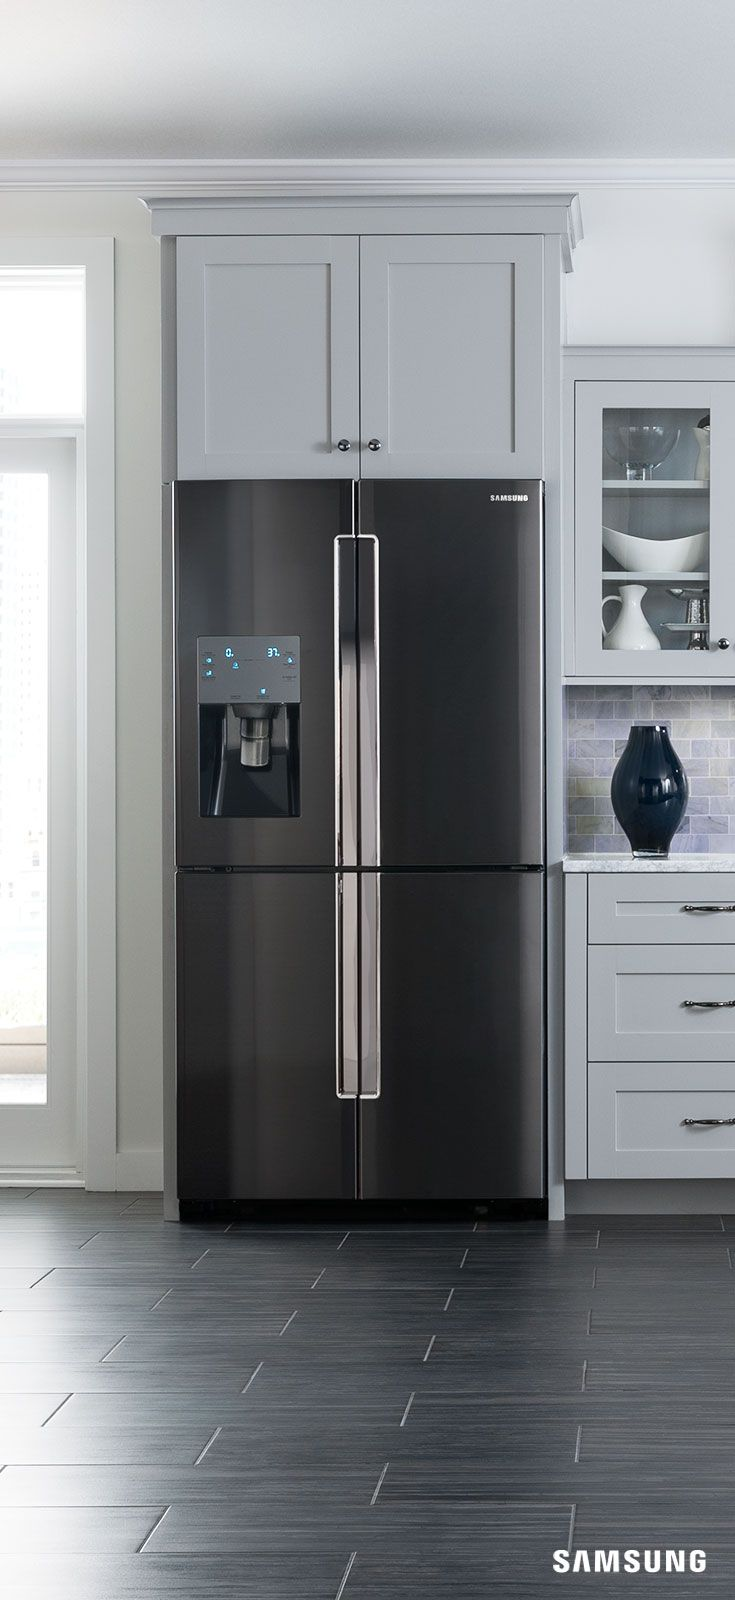 Adding a little fridge décor to your home is a cinch with the eye-catching 4 Door Flex. With sleek black stainless steel, this refrigerator makes a striking contrast against white kitchen cabinets and bright backsplash. But really, it'd look right at home in any kitchen (in our humble opinion).